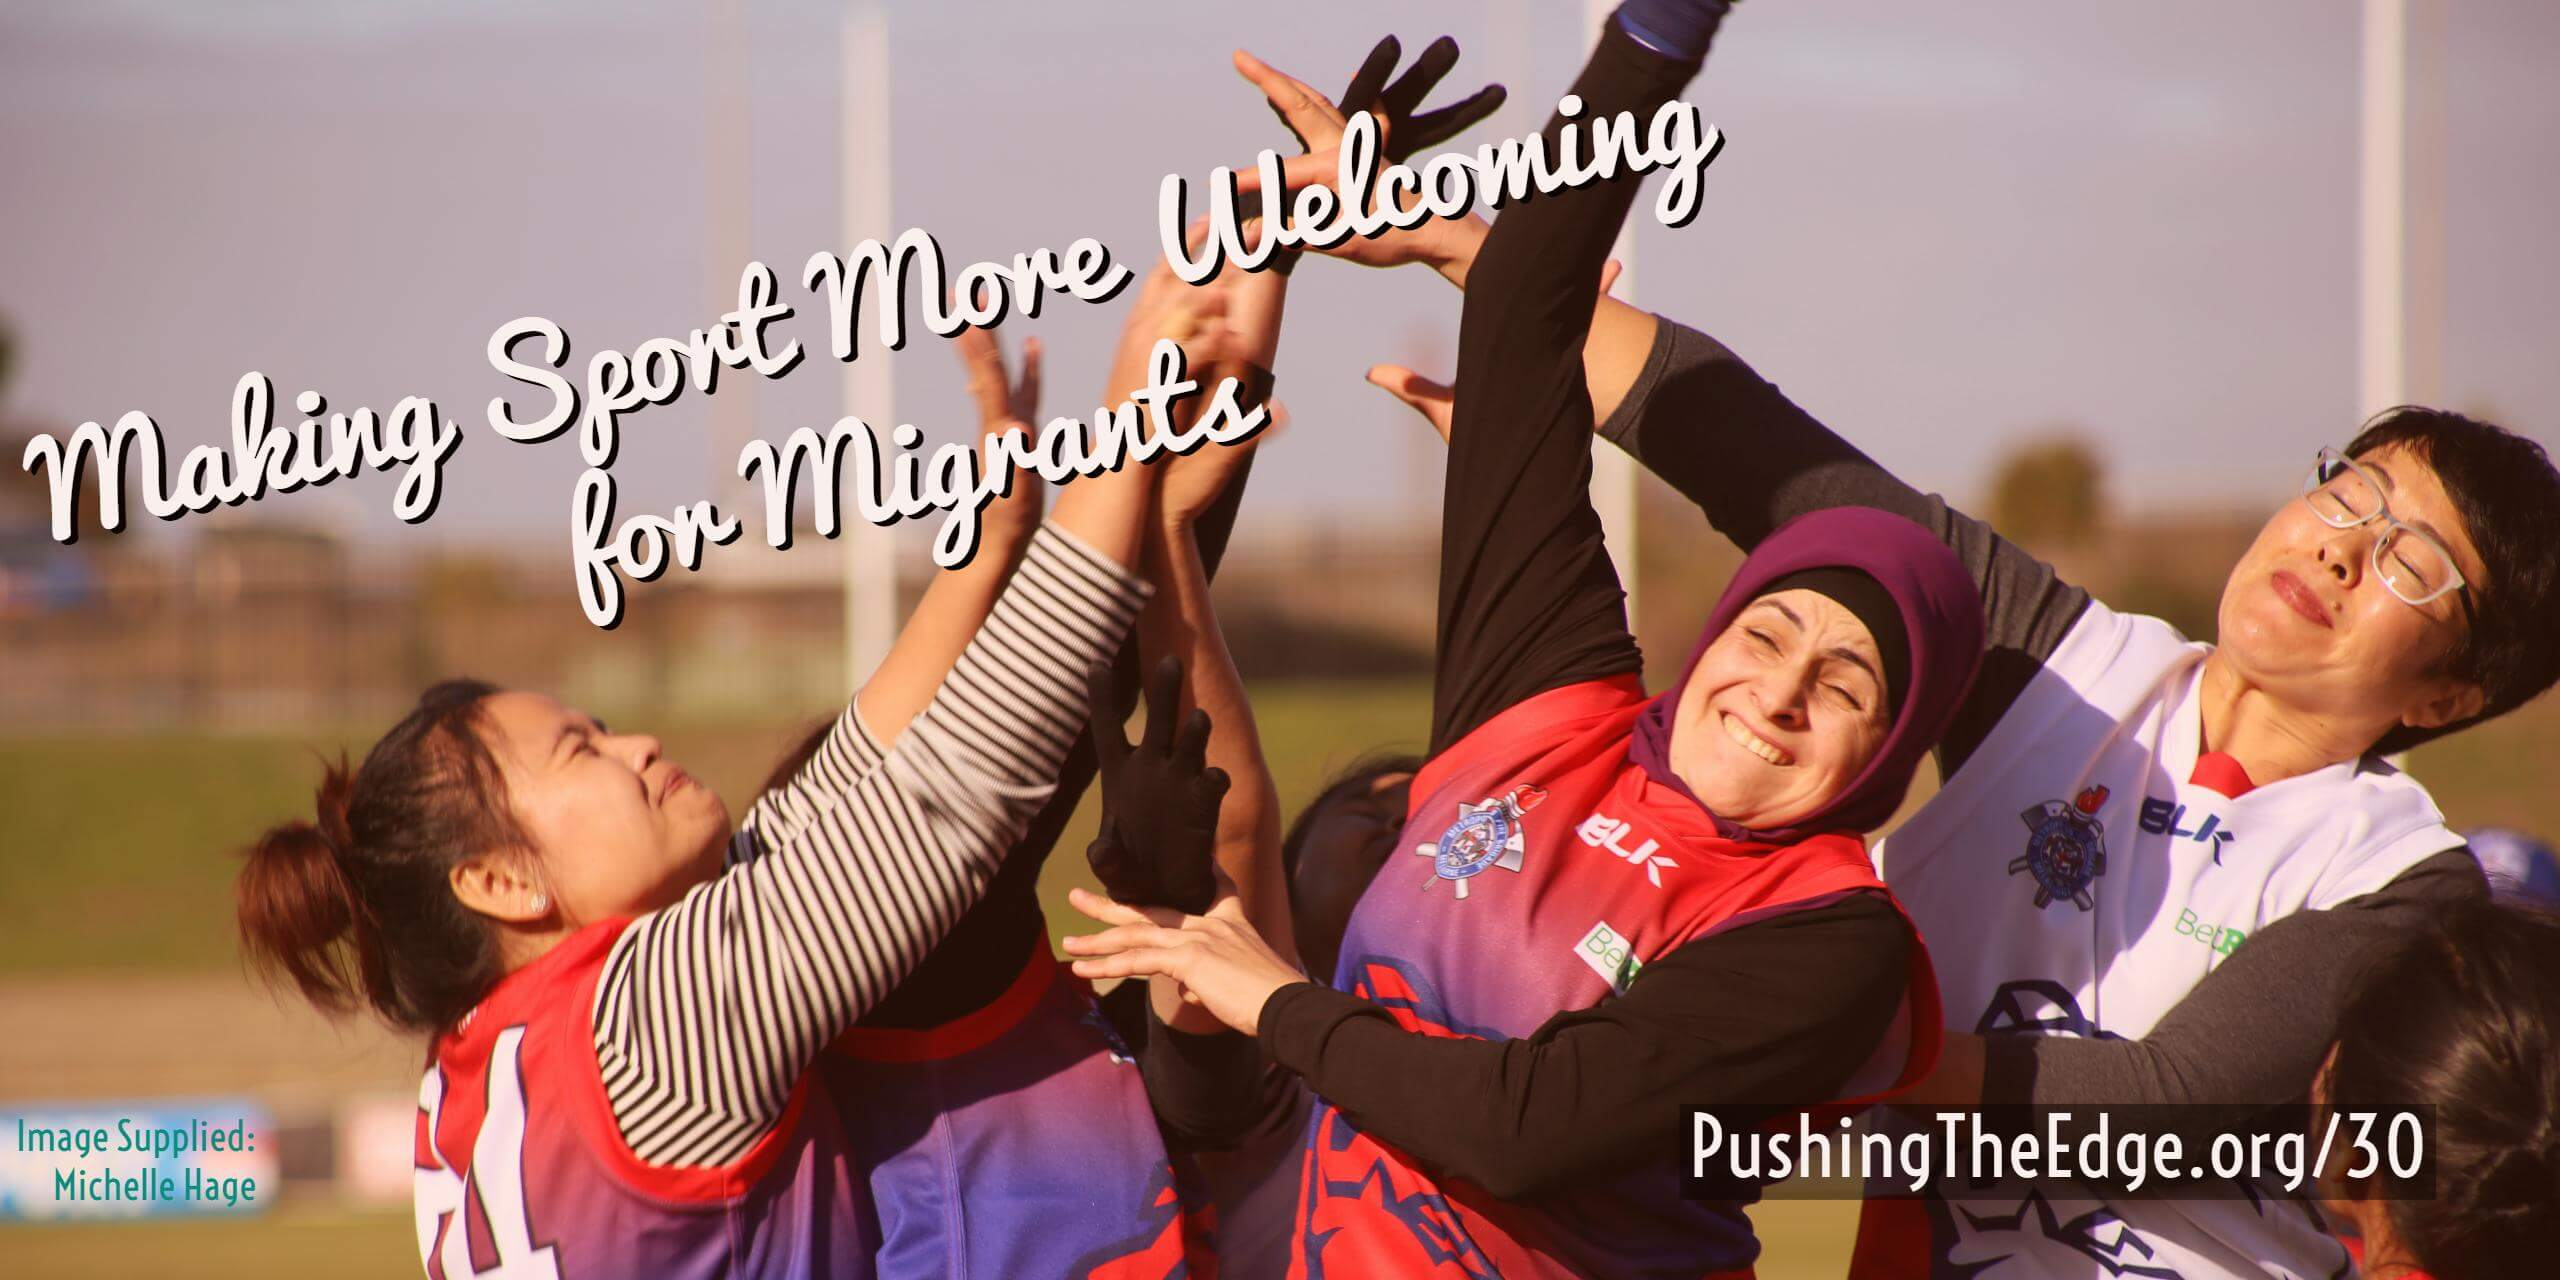 Making sport more welcoming for migrants